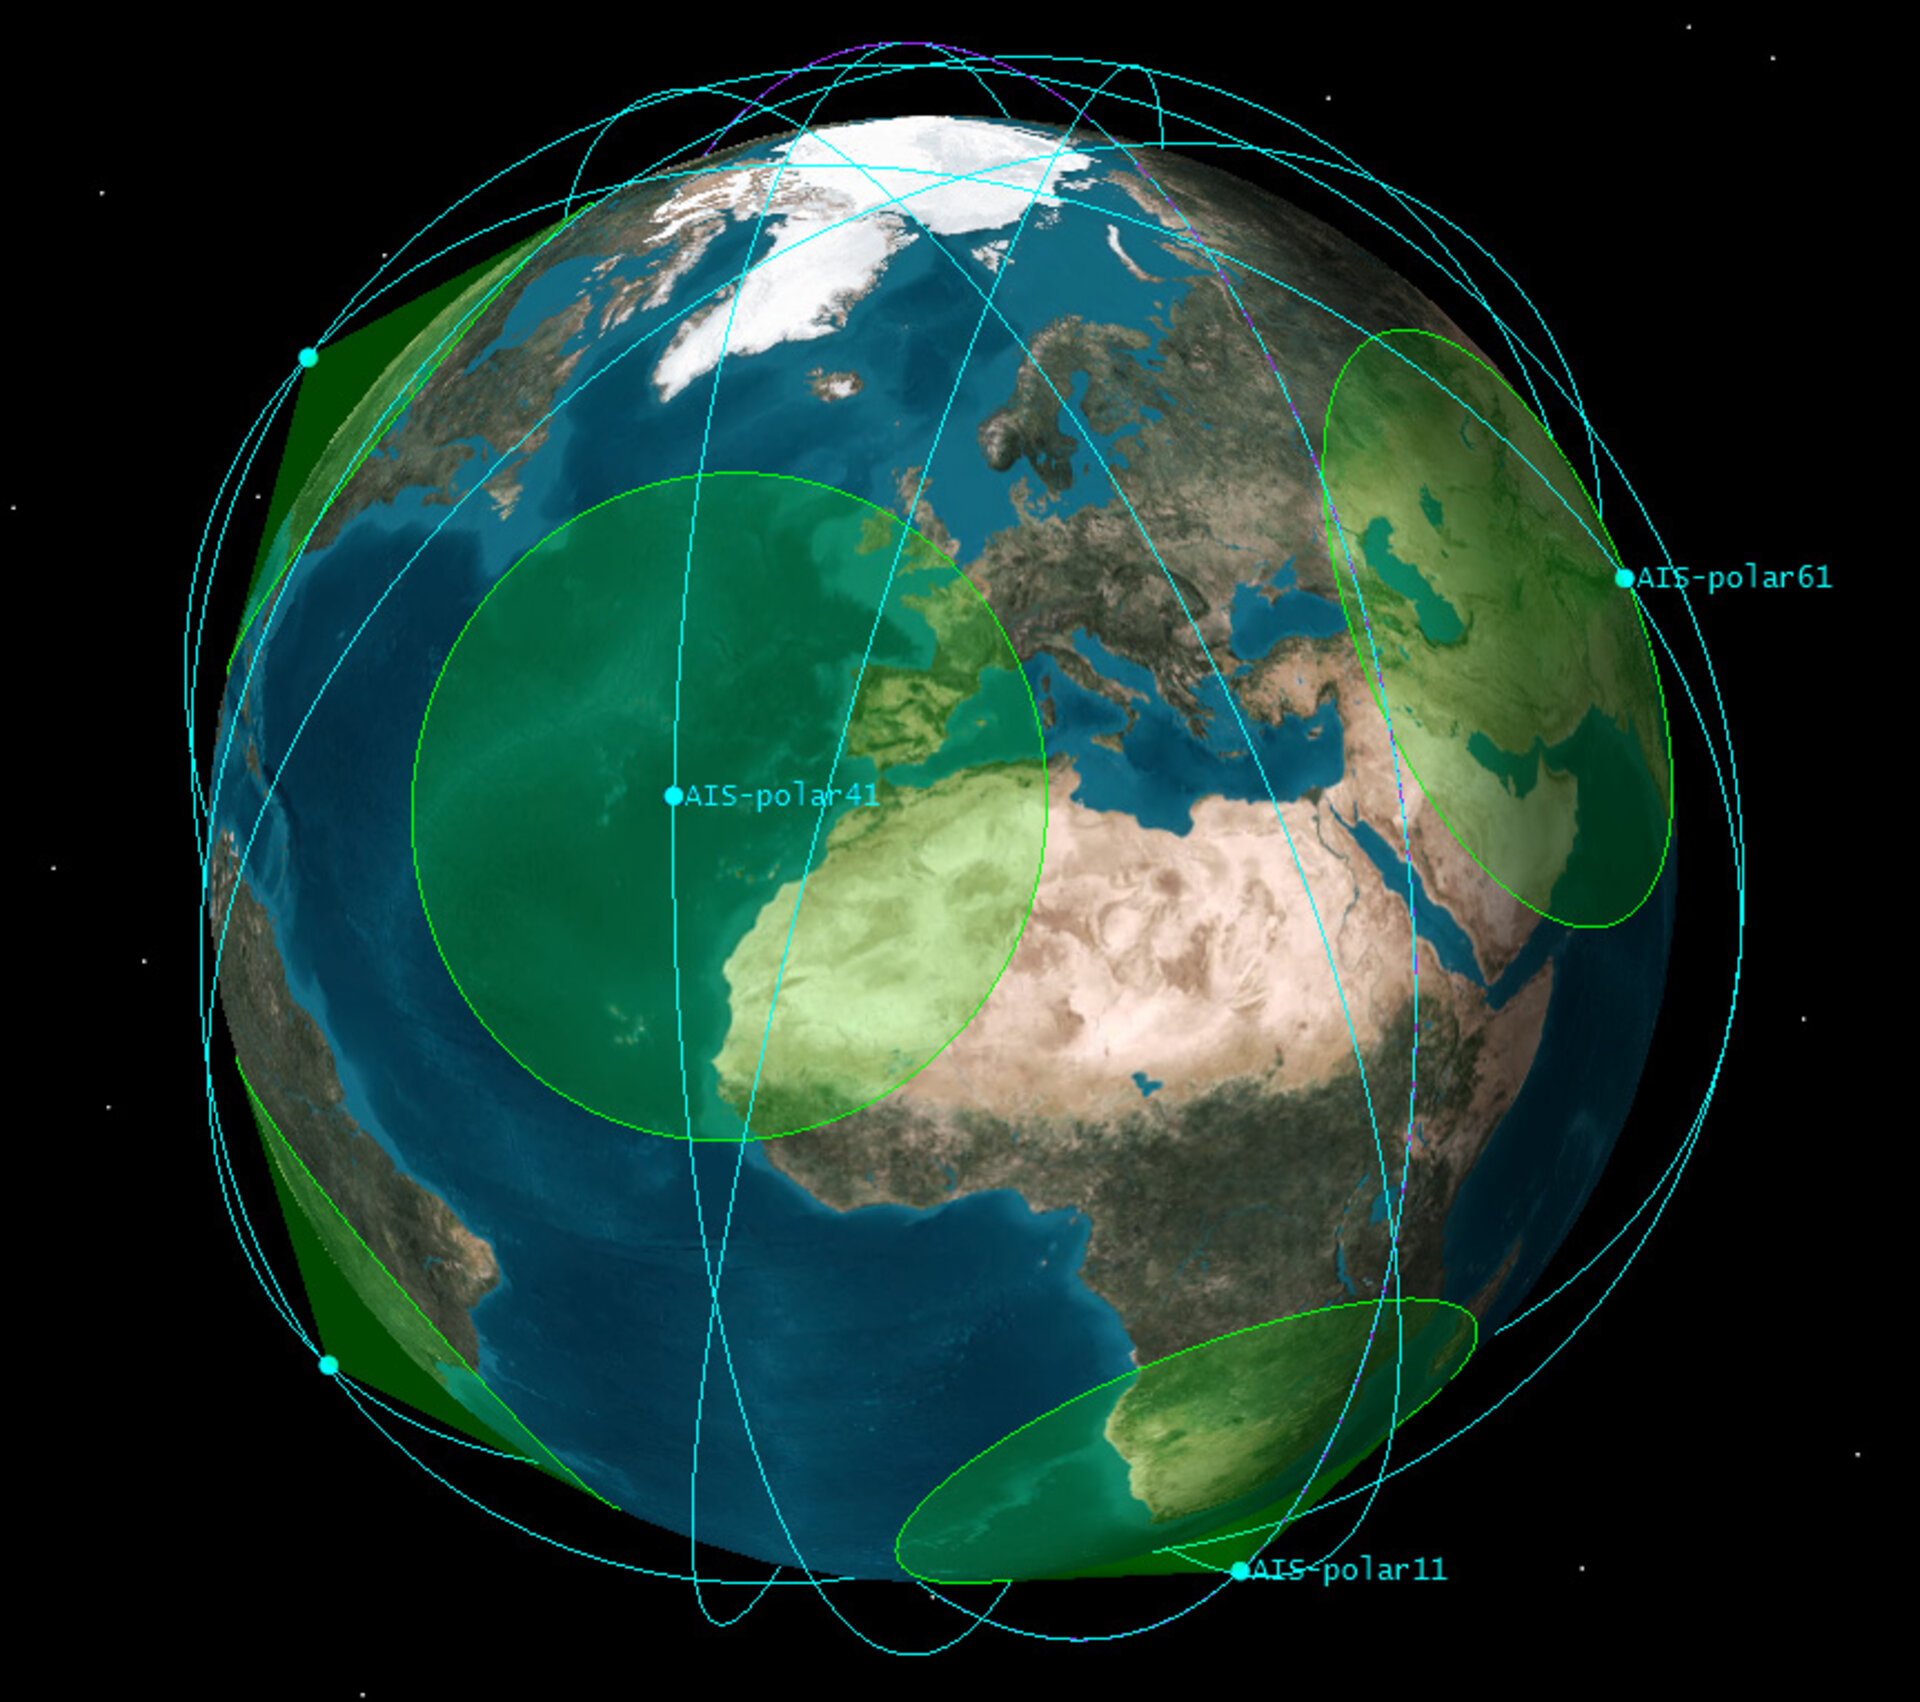 AIS signal detection from space